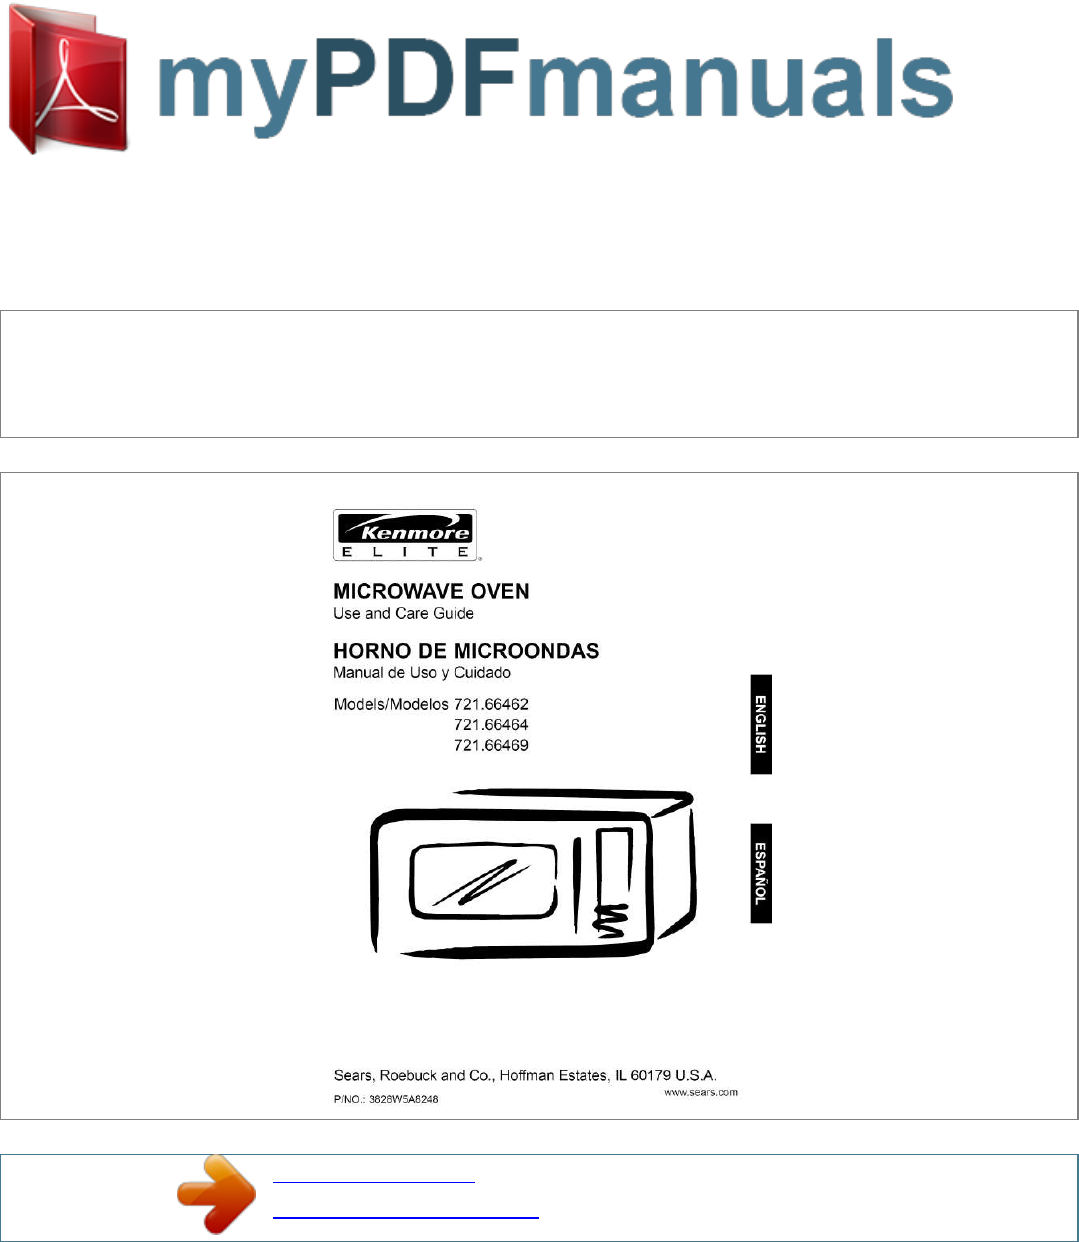 Kenmore 721 66464 Microwave Oven User Manual